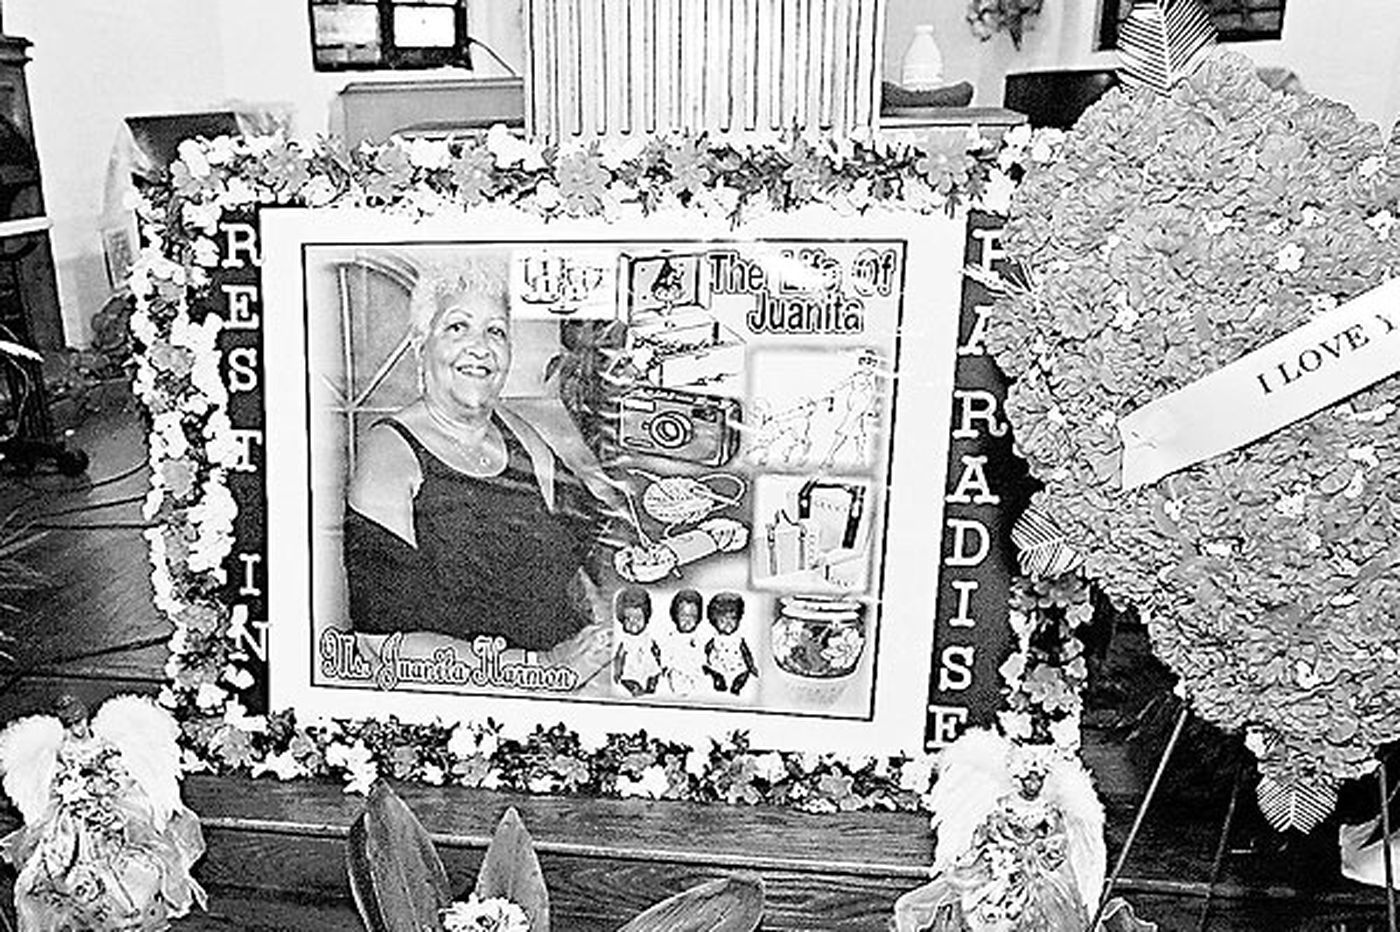 Remembering Juanita Harmon, 75, who died in collapse